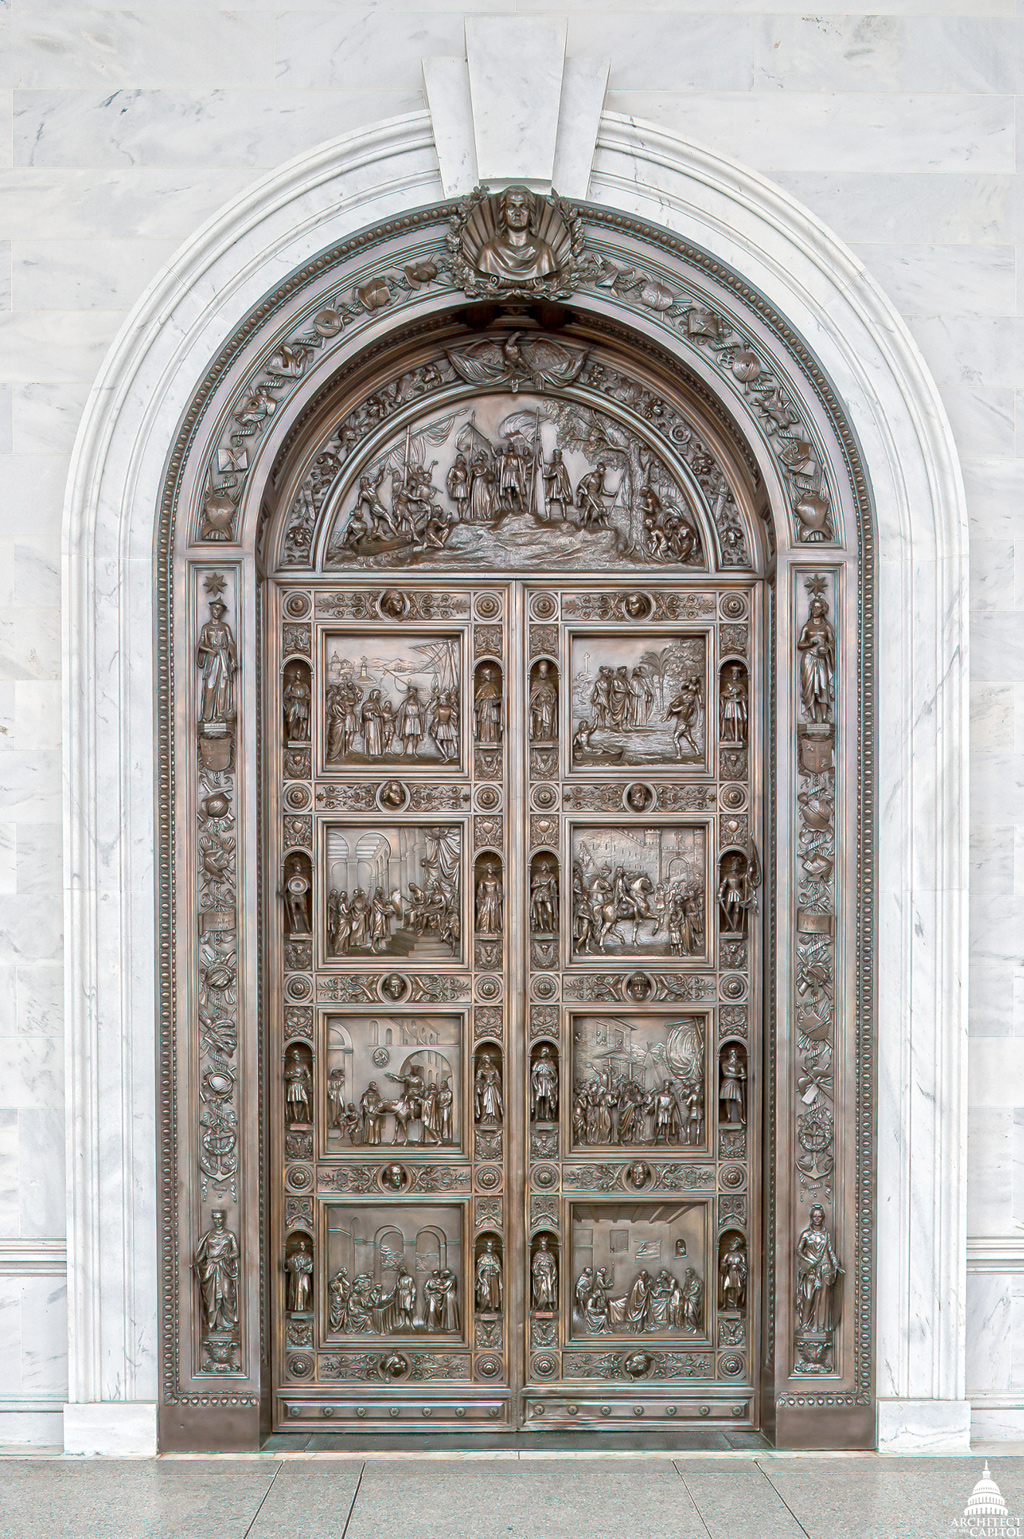 Randolph Rogers' Columbus doors are located on the east entrance to the Rotunda.